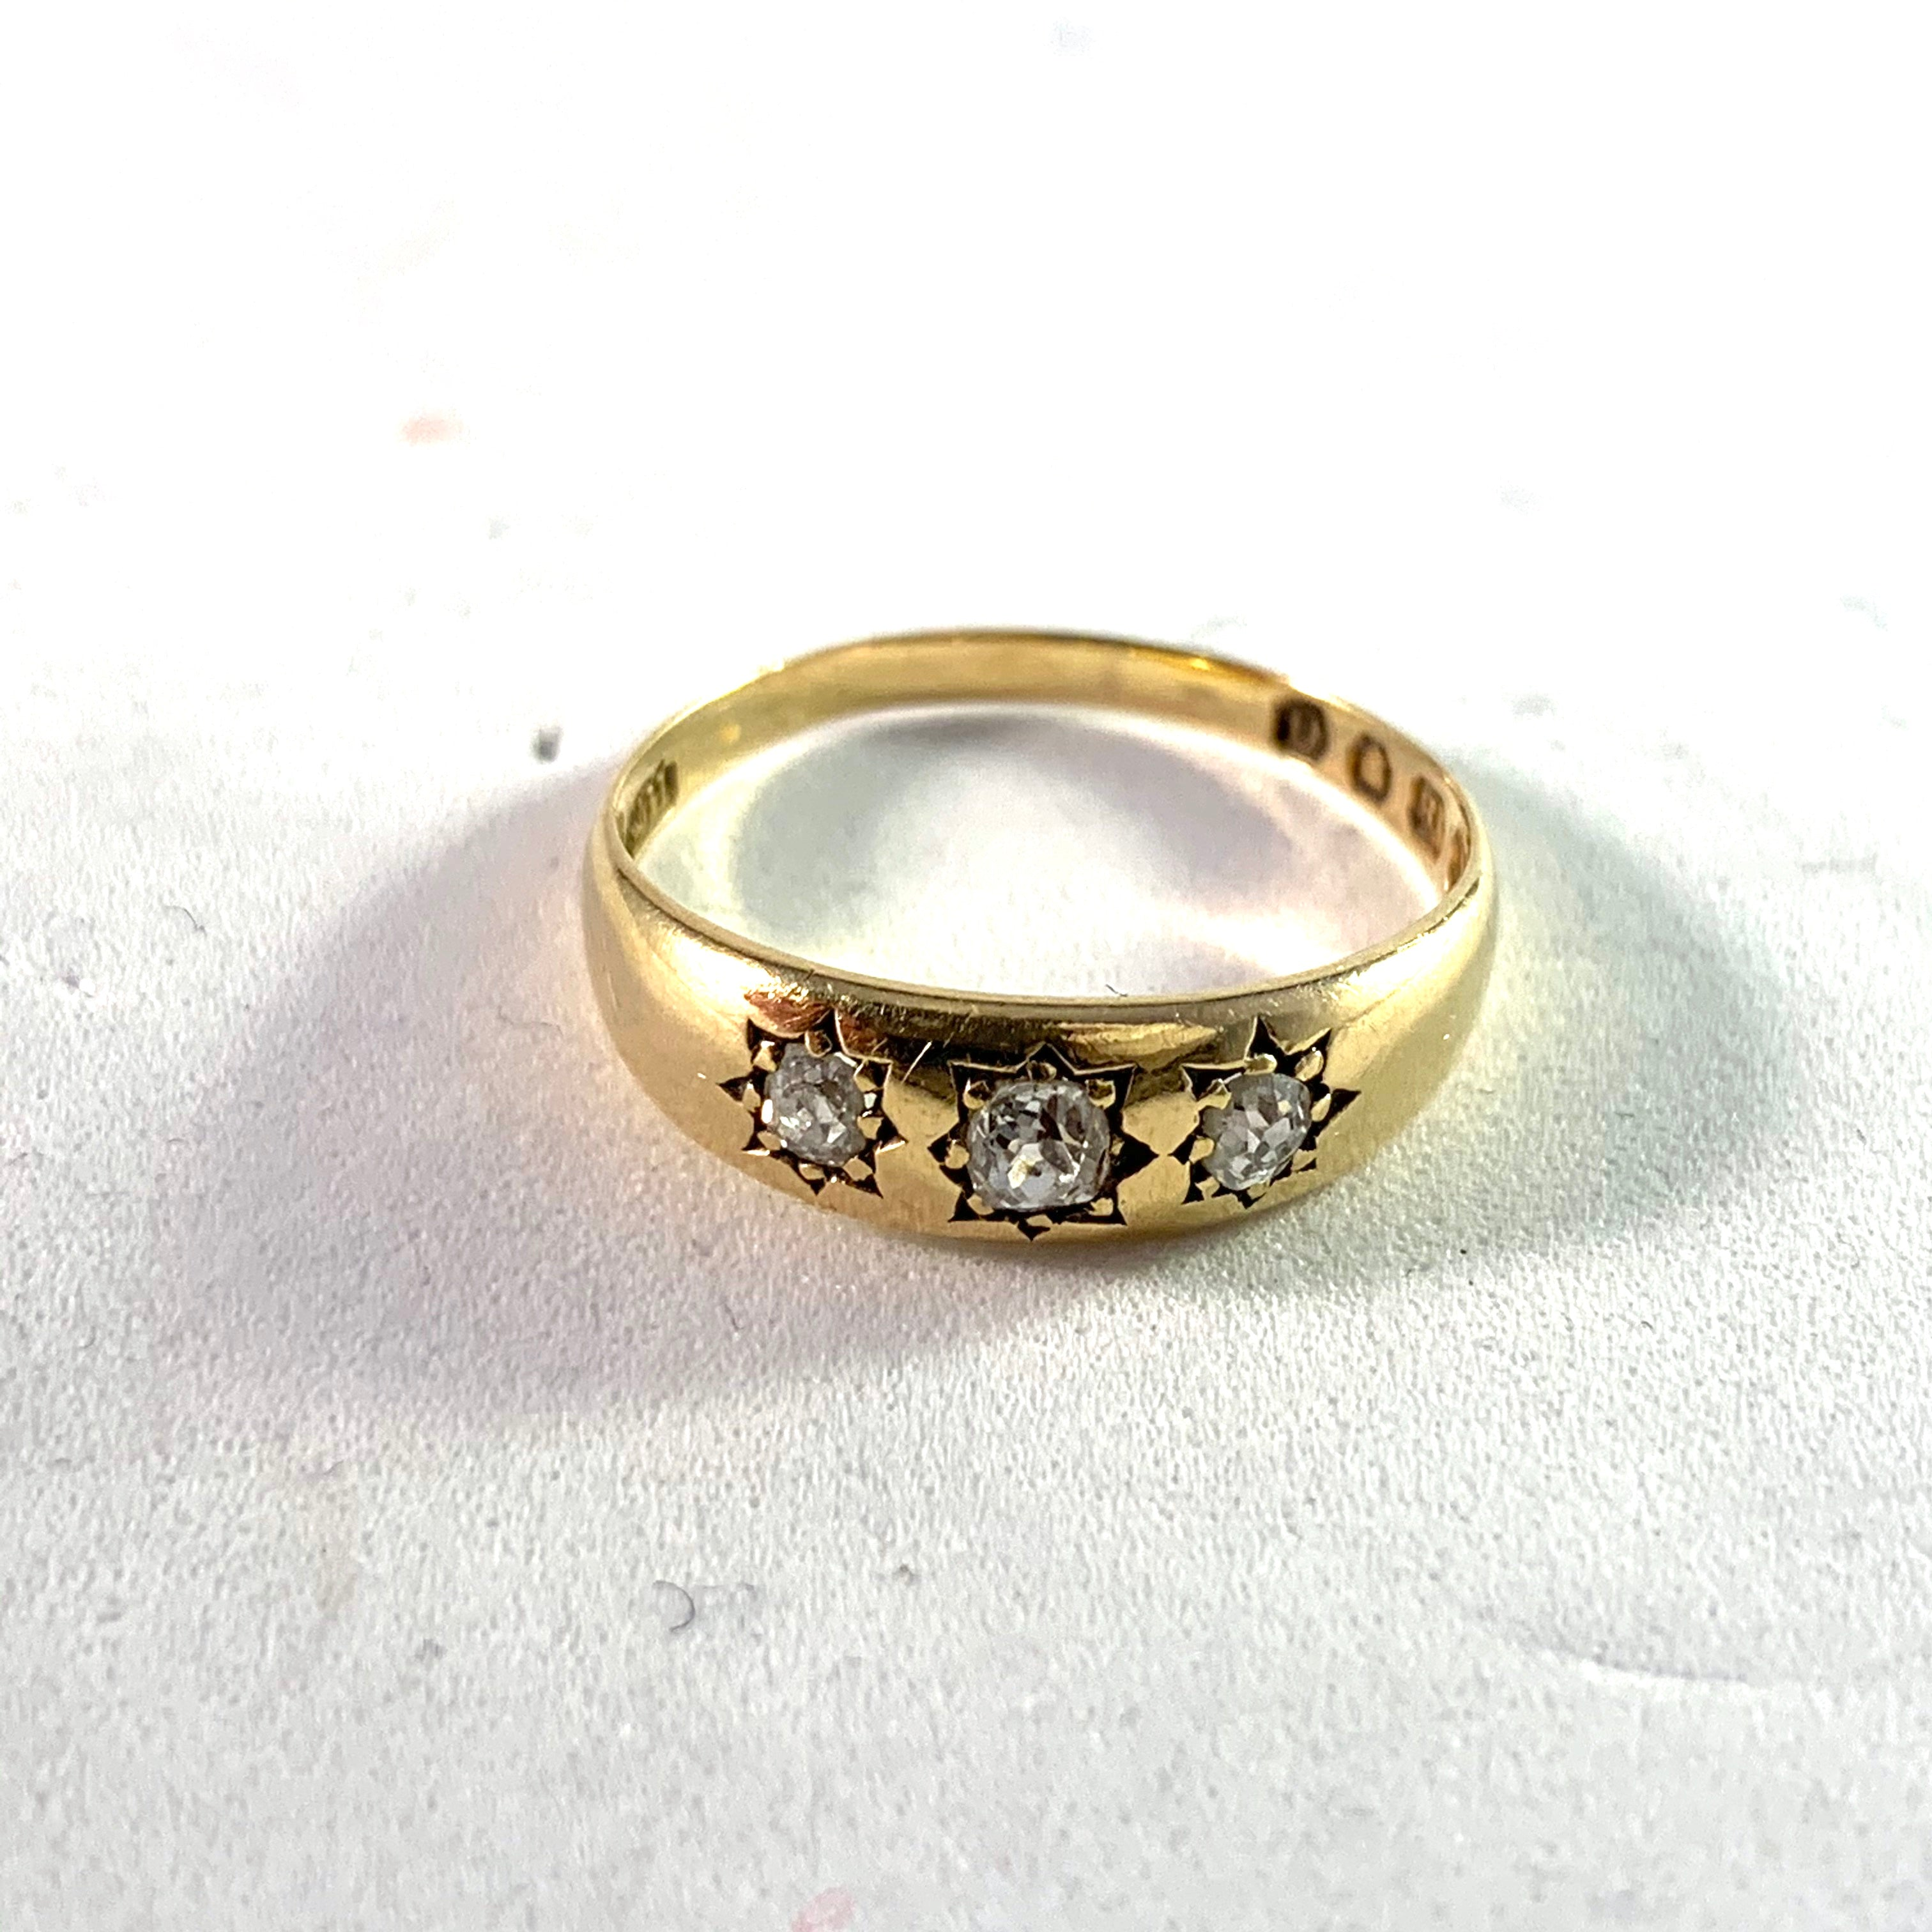 Brockwell & Son, London 1889 Victorian 18k Gold Diamond Gypsy Ring.